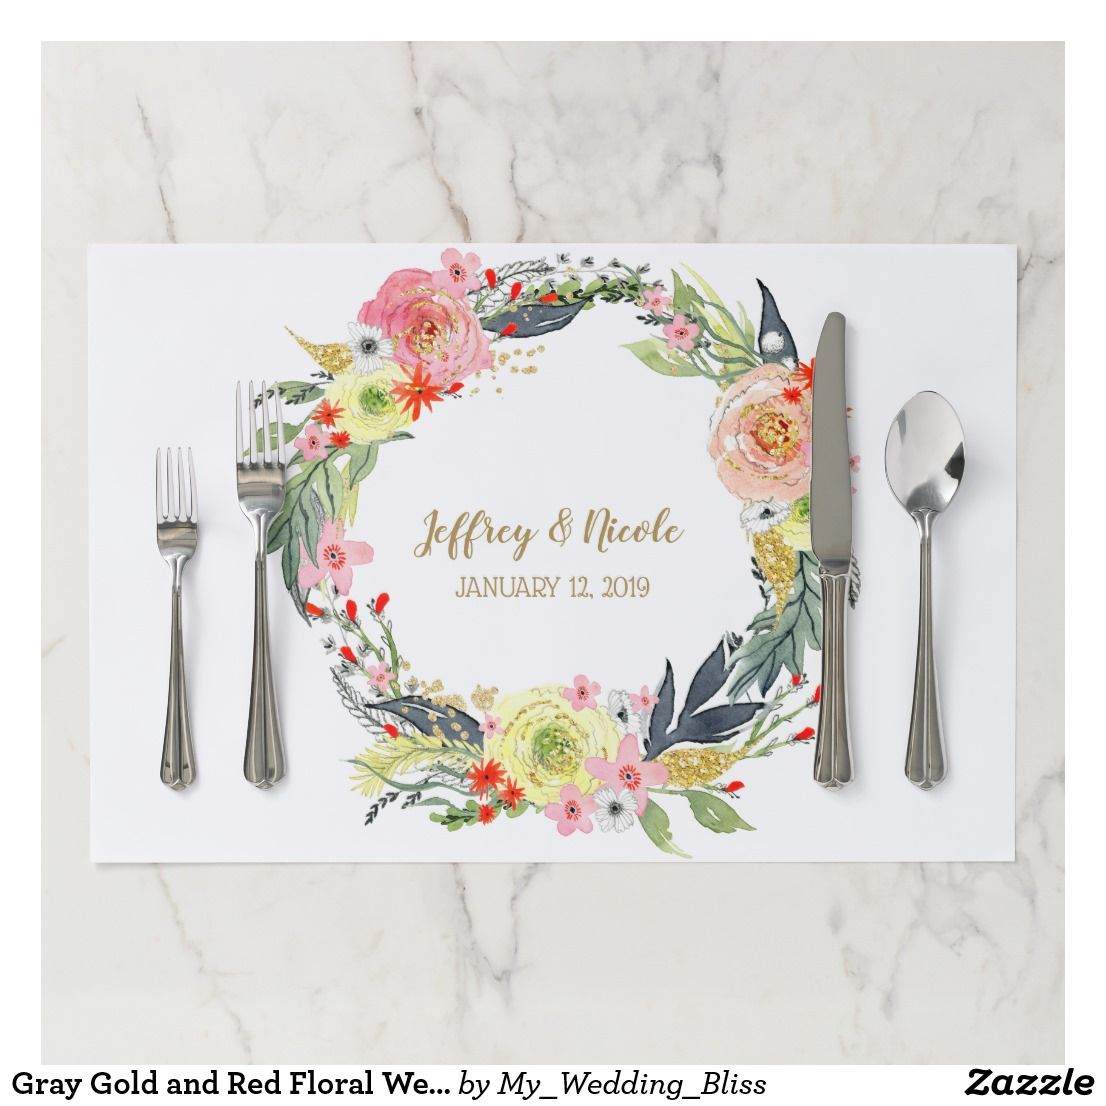 Wedding decorations for reception january 2019 Gray Gold and Red Floral Wedding Reception Dinner Paper Placemat